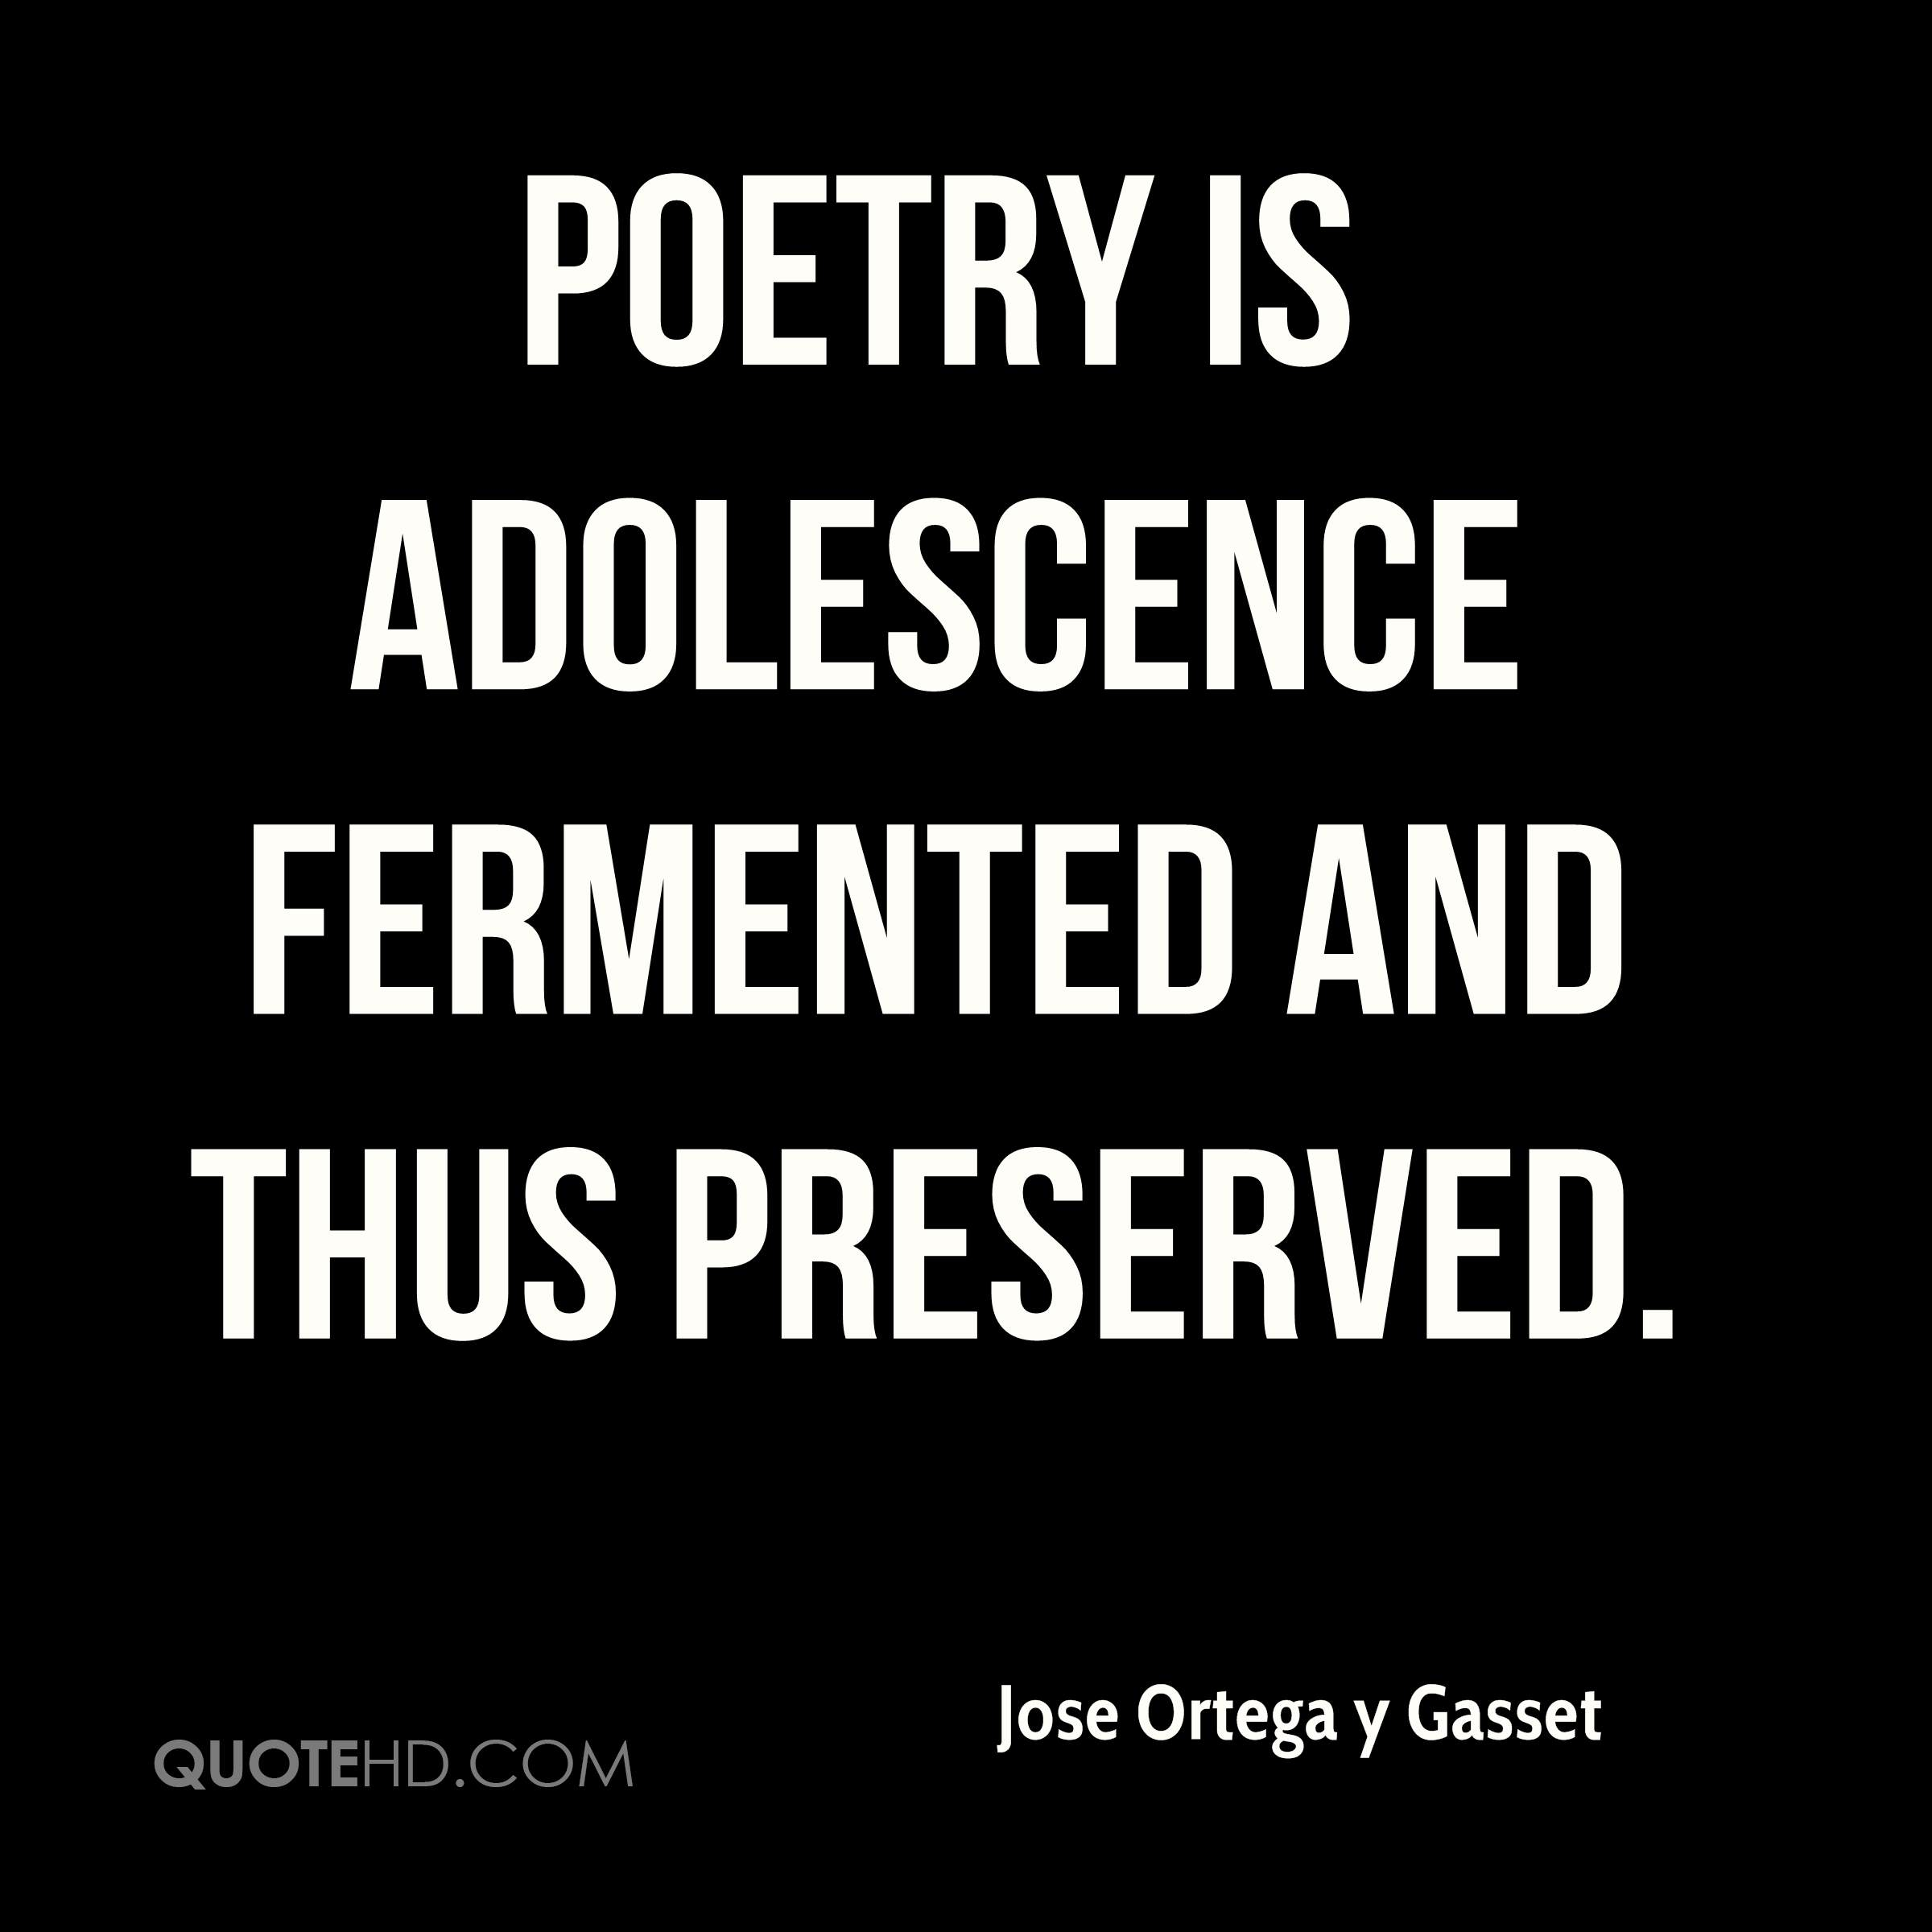 Poetry is adolescence fermented and thus preserved.